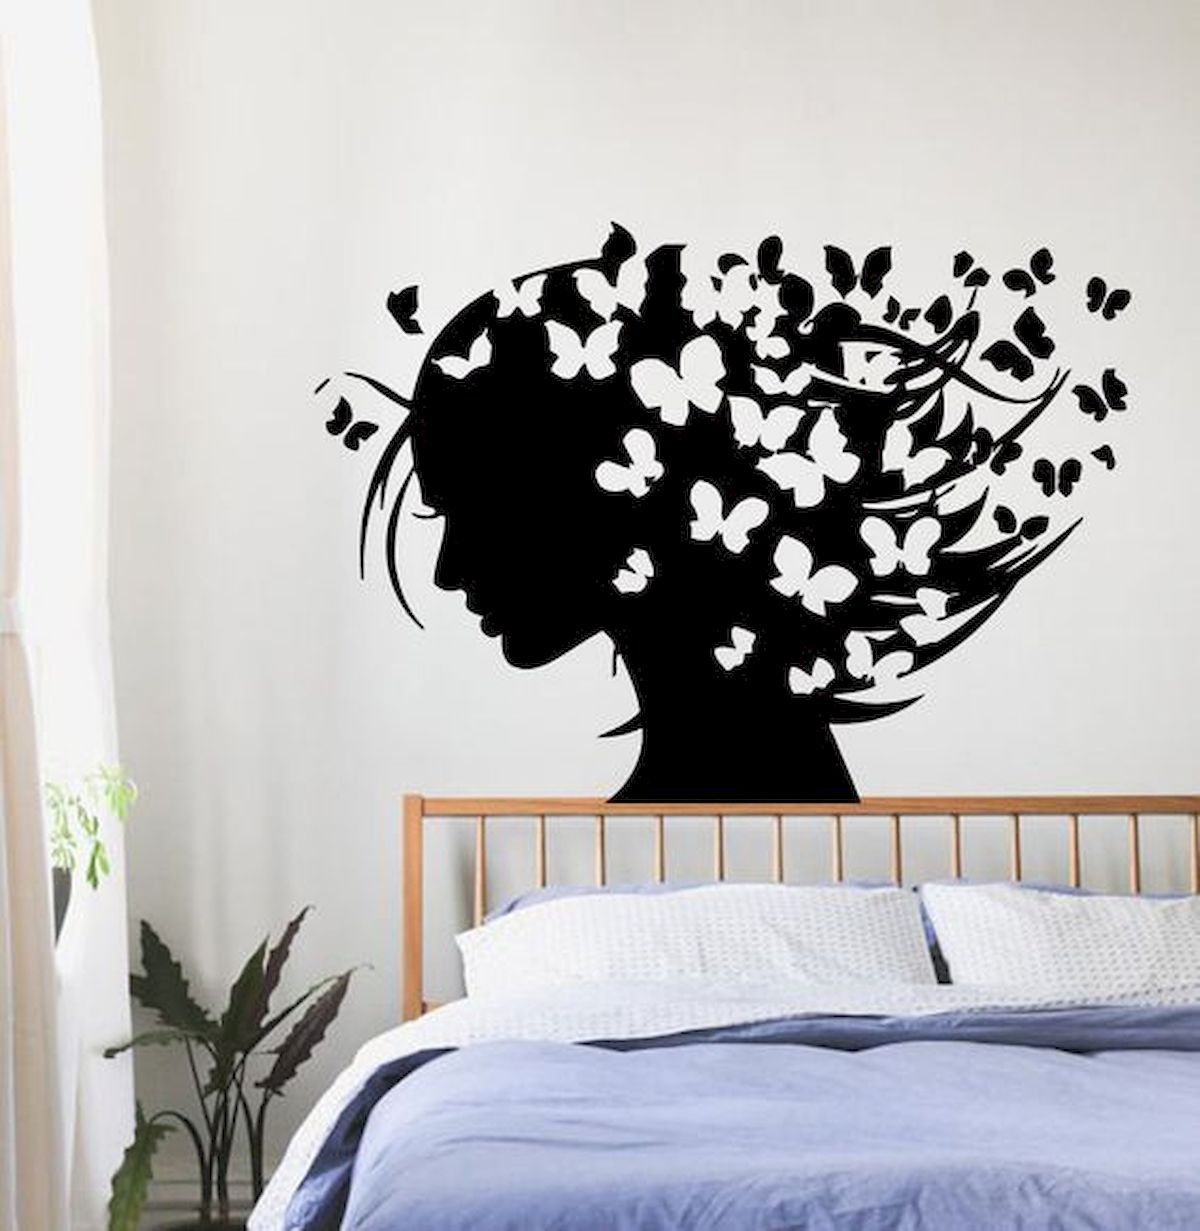 Simple Wall Art Design For Bedroom Trendecors